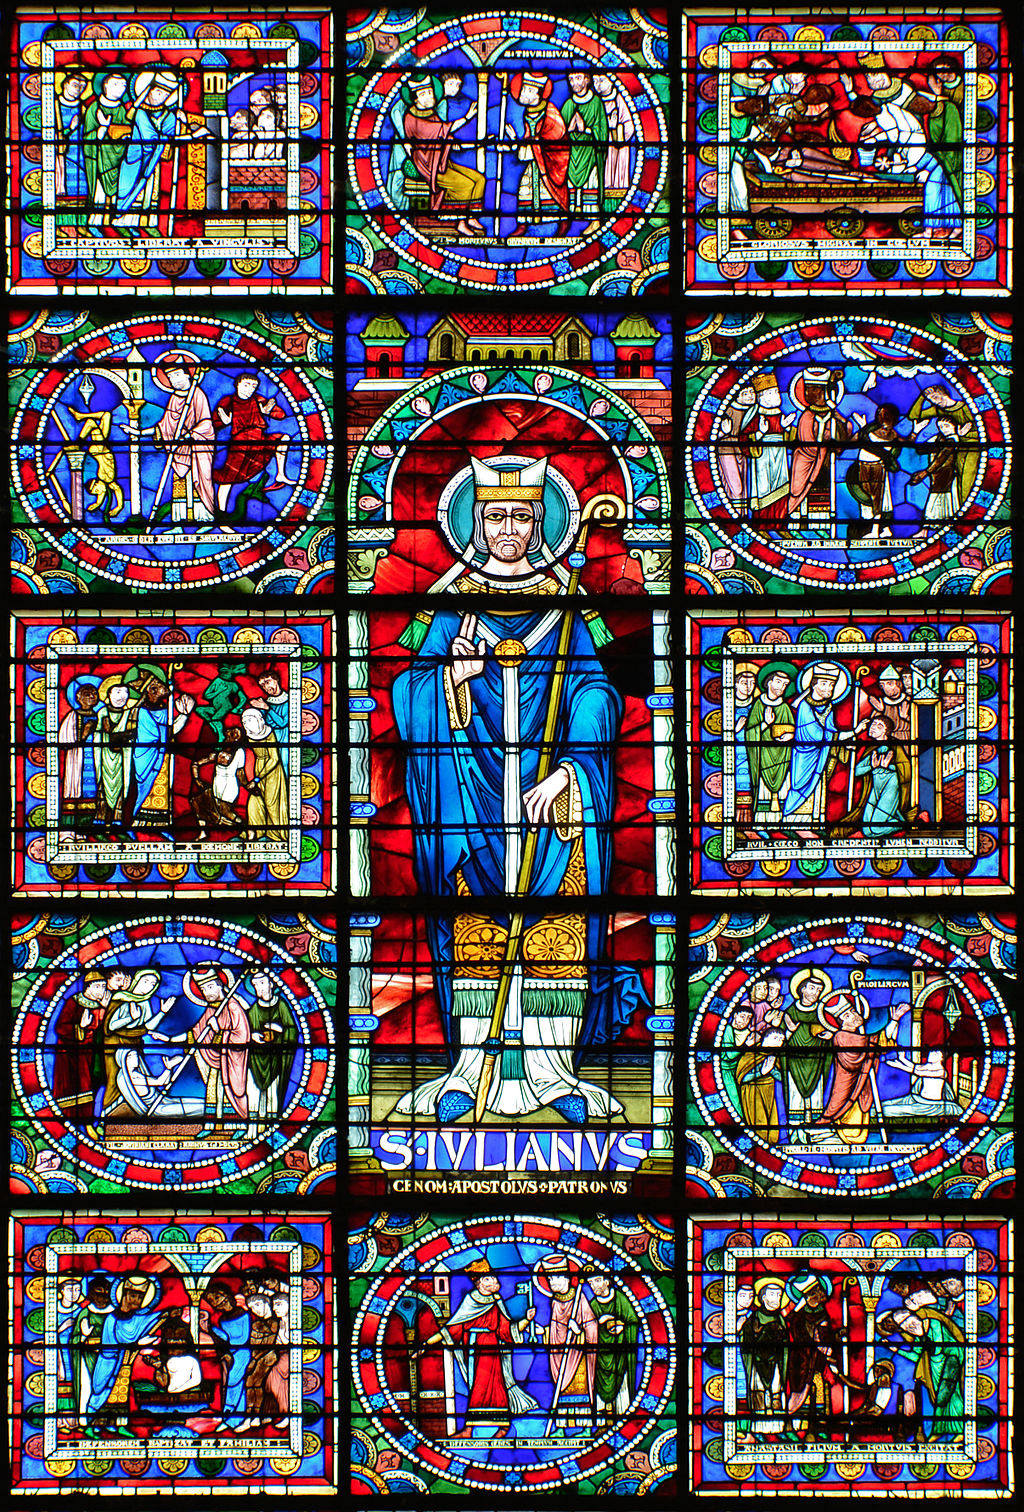 Medieval Stained Glass In Le Mans Cathedral Behind The Glass